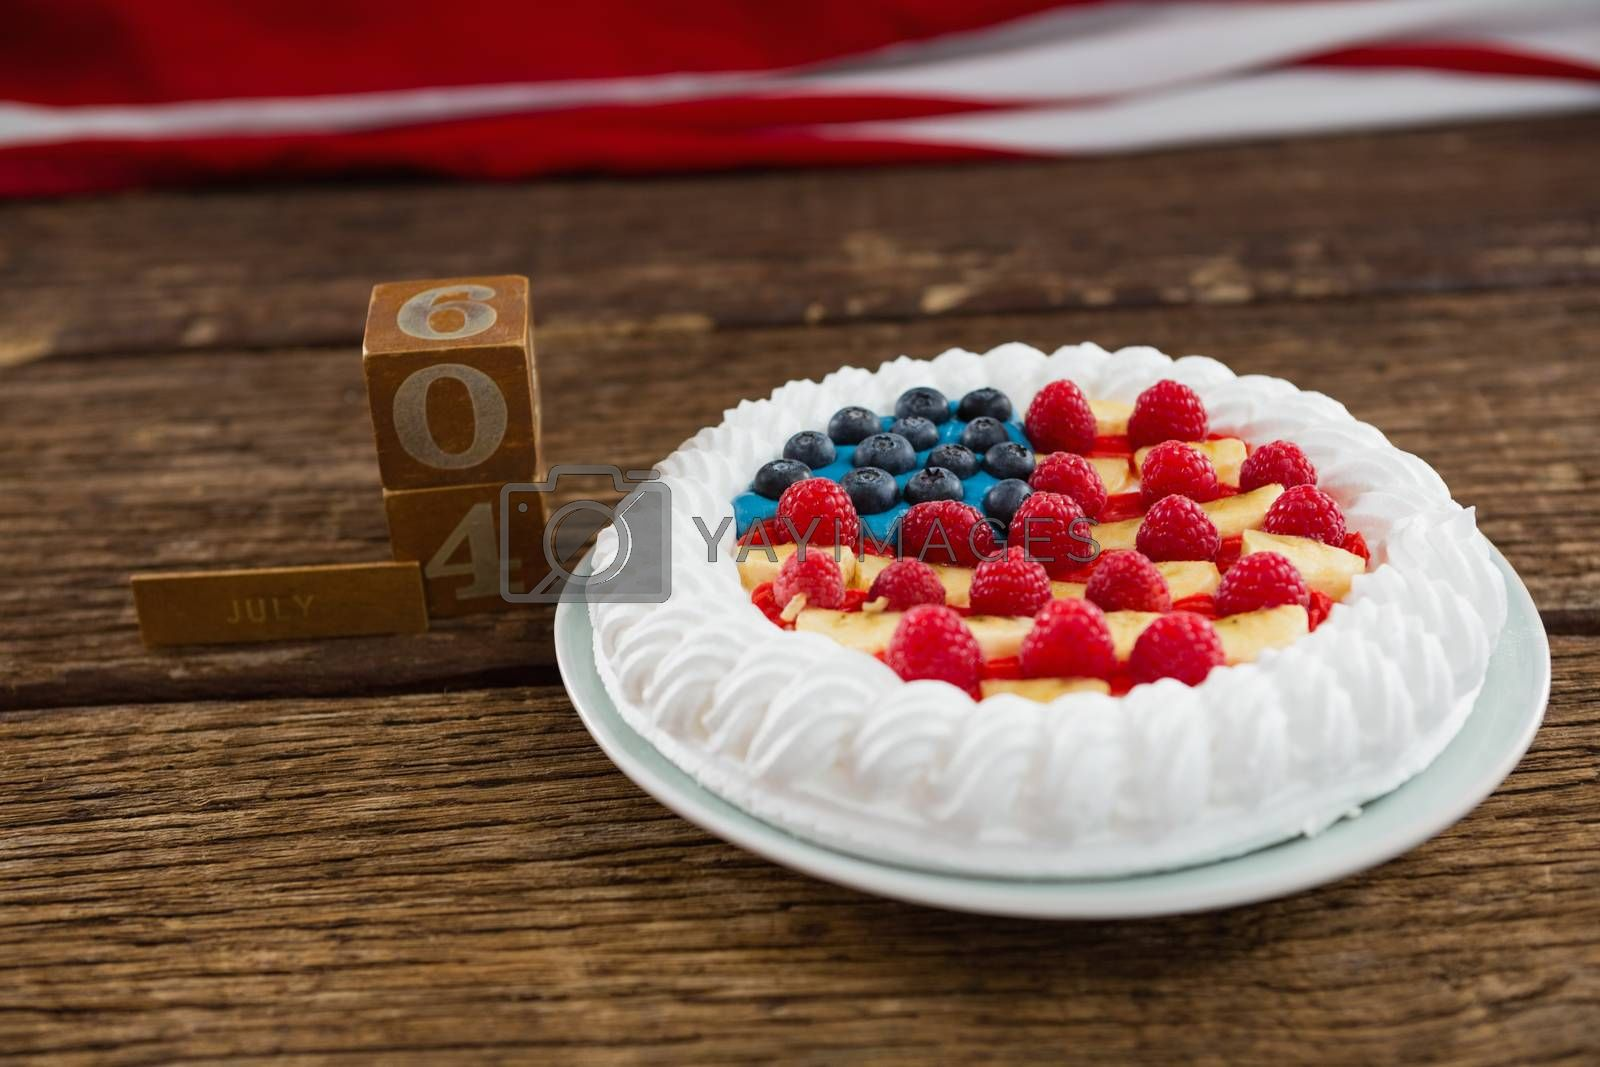 Close-up of date blocks and fruitcake on wooden table with 4th july theme